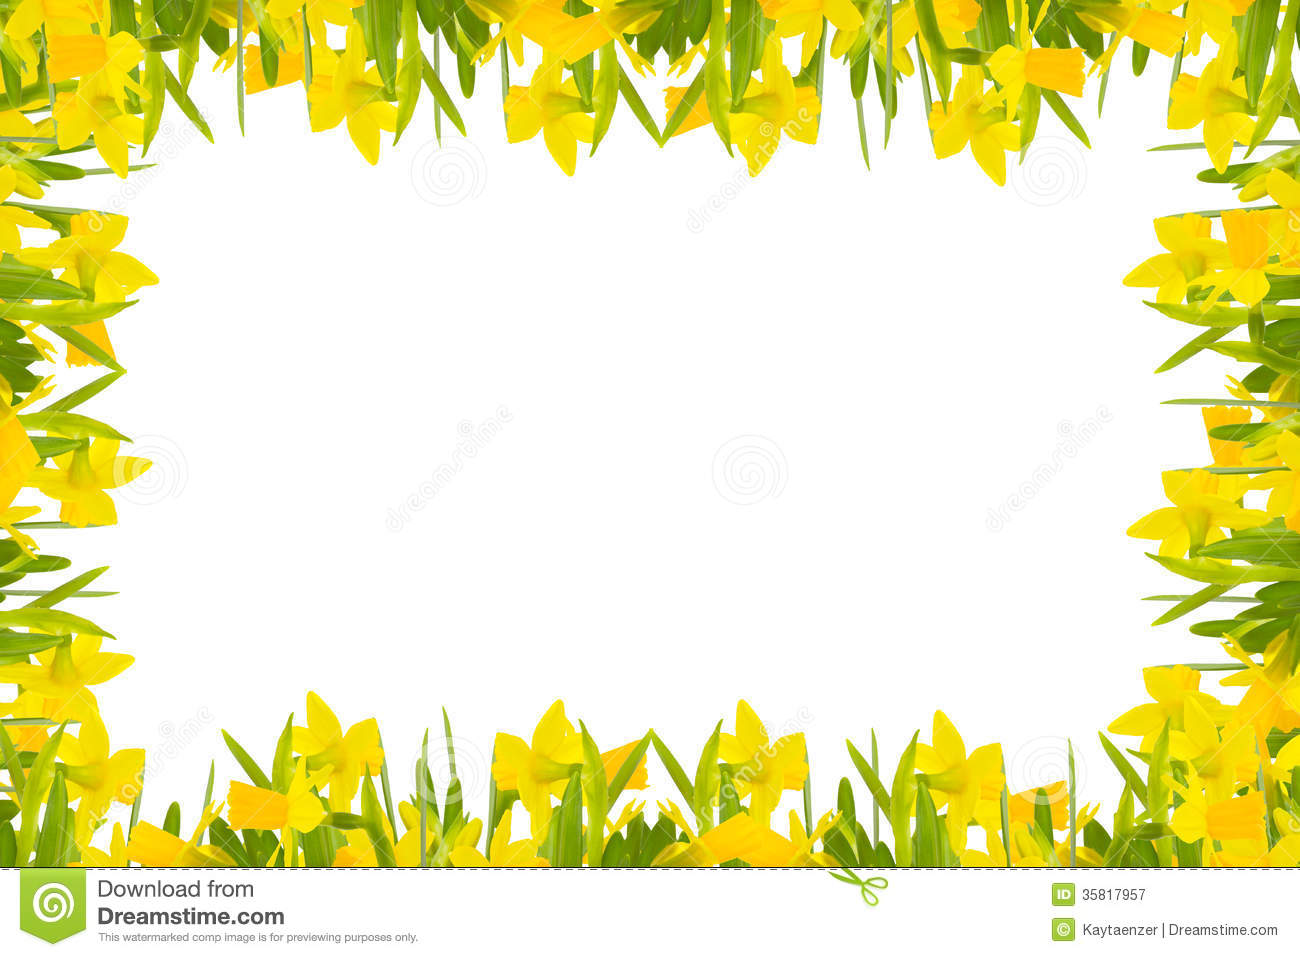 Daffodils Frame Royalty Free Stock Photography - Image: 35817957